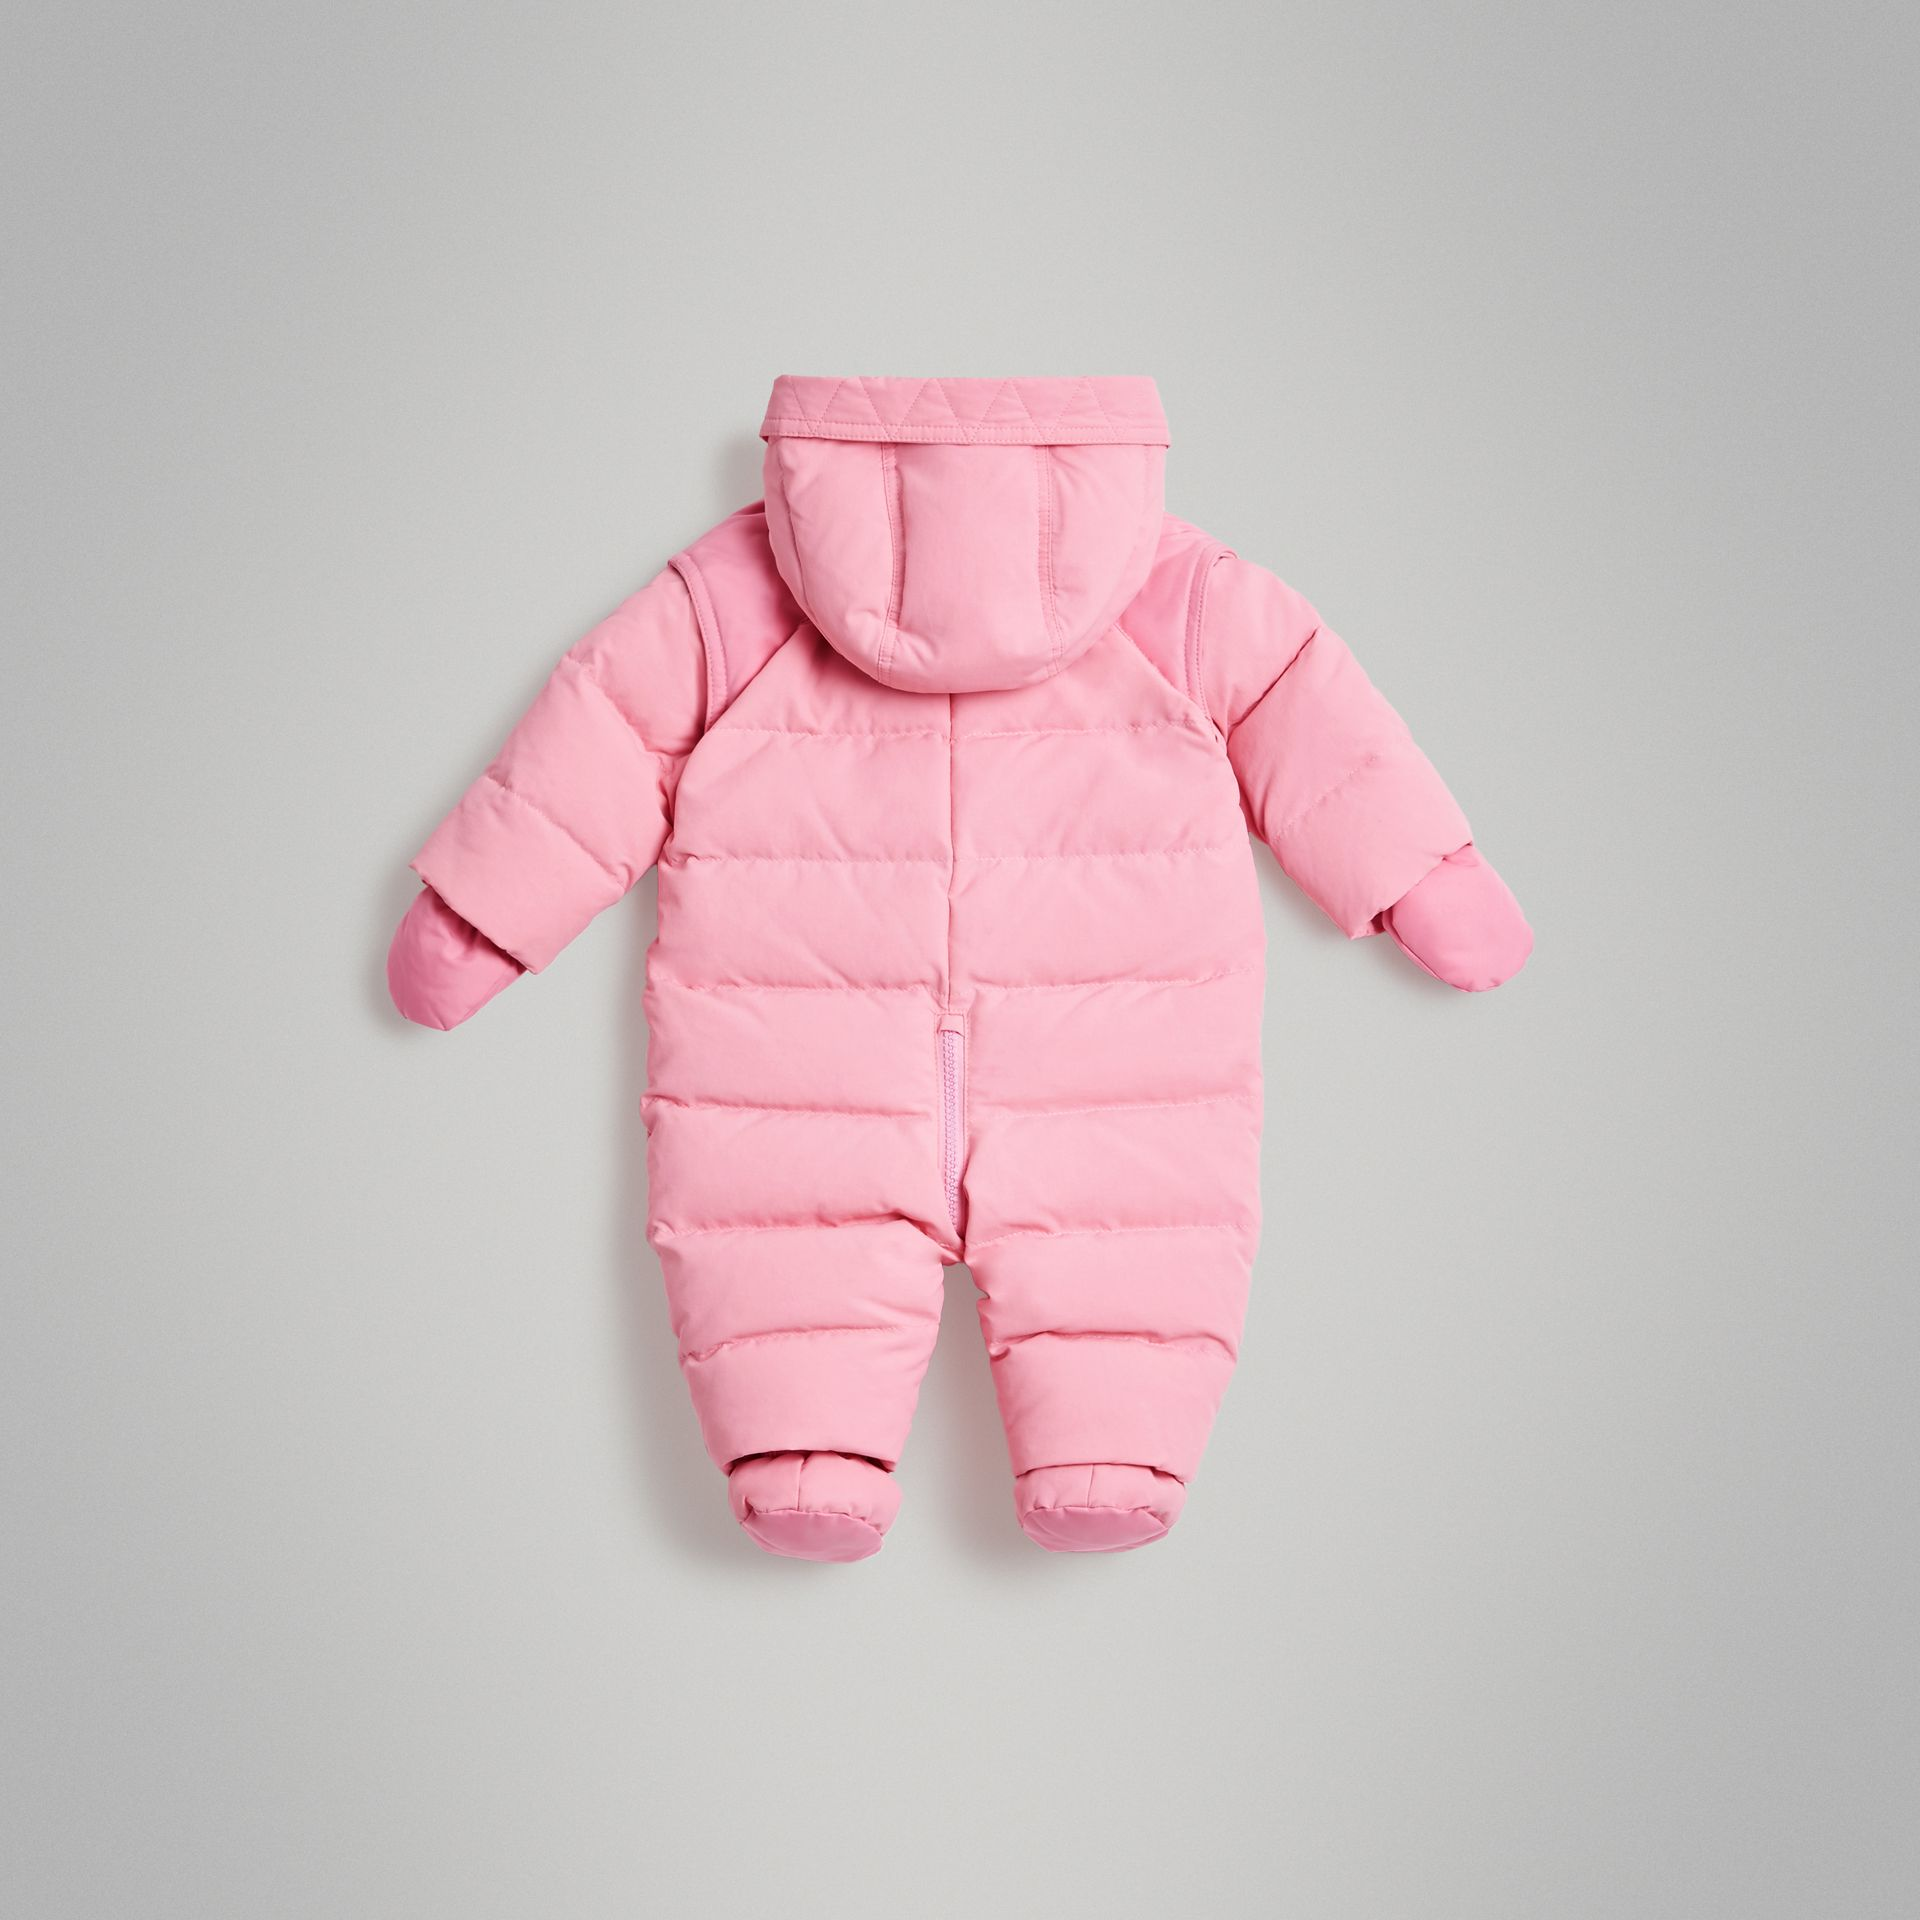 Down-filled Puffer Suit in Ice Pink - Children | Burberry Australia - gallery image 3